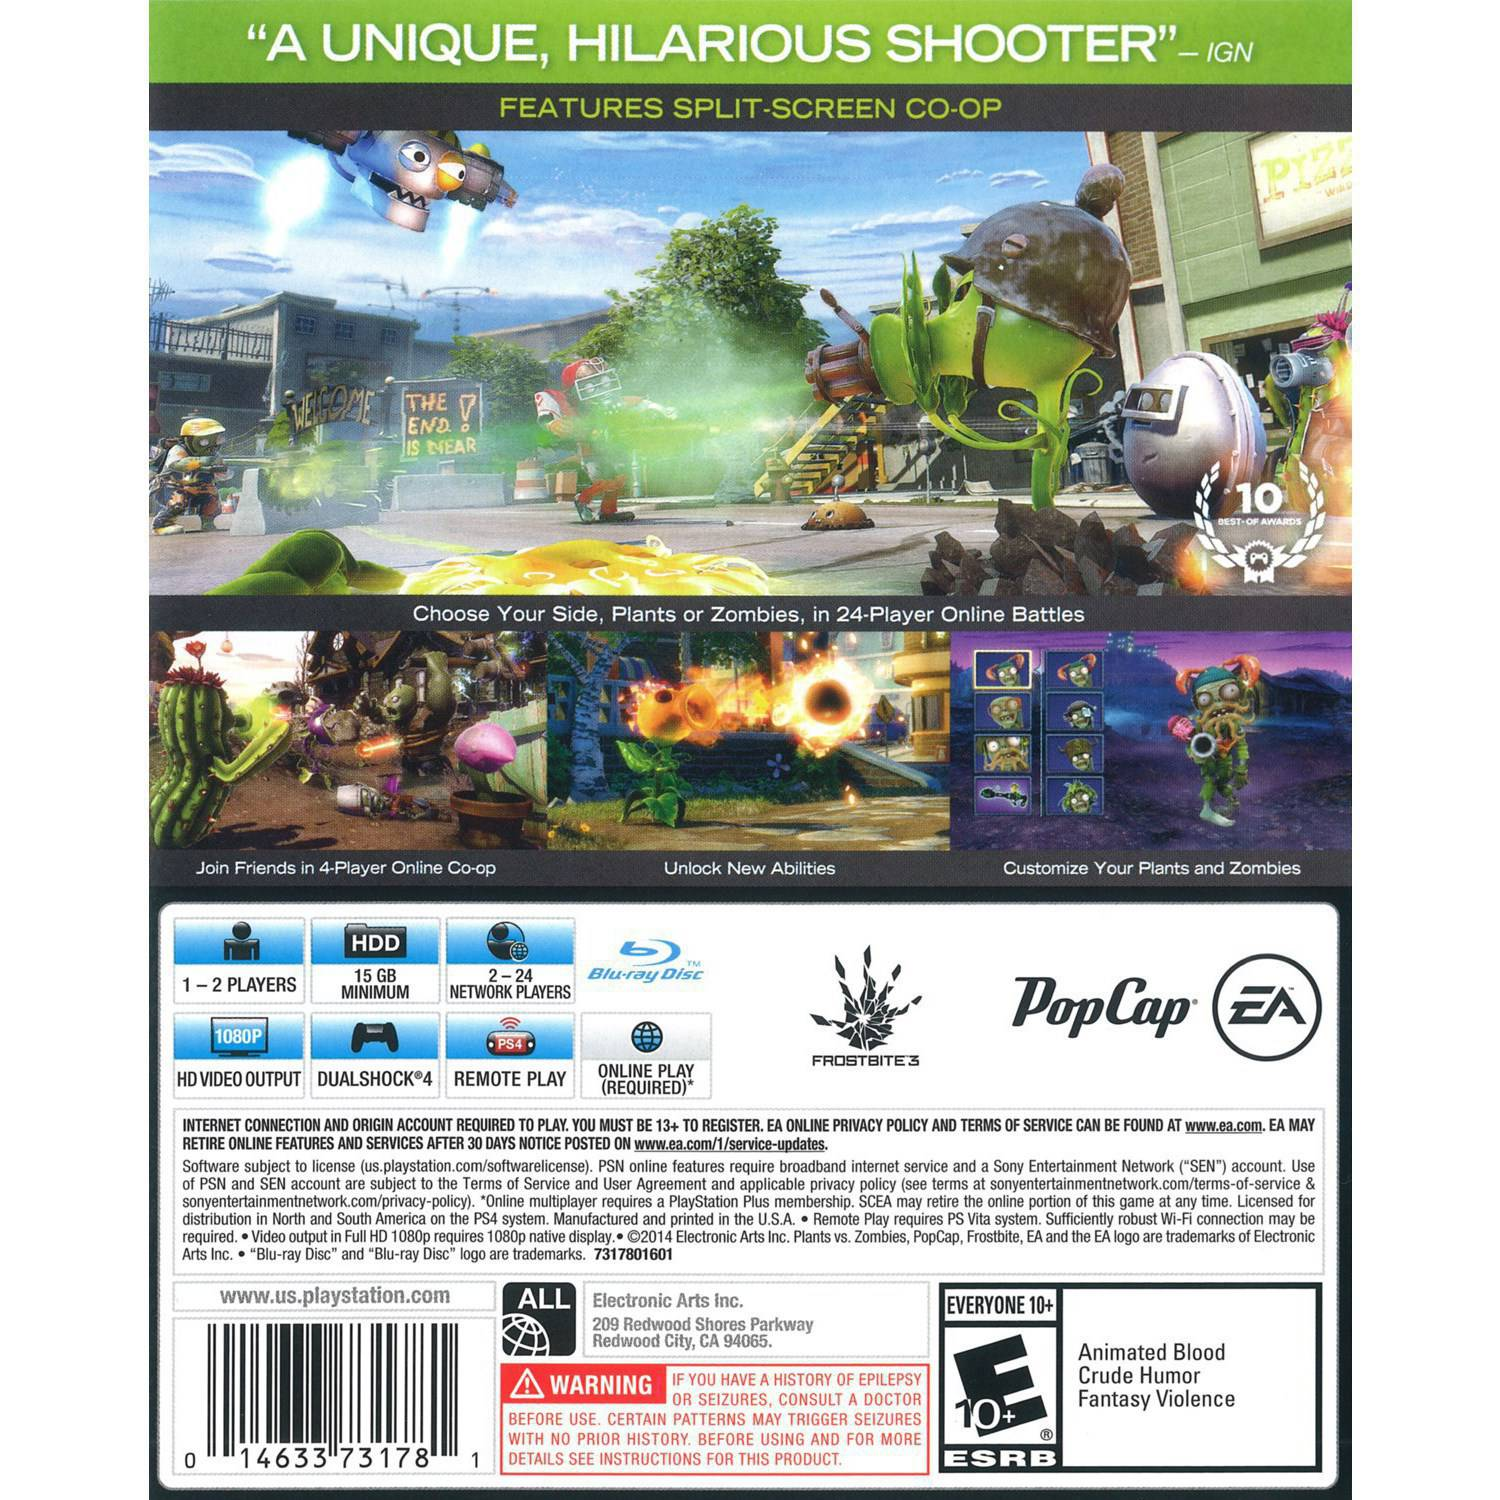 Plants Vs Zombies Garden Warfare 2 Festive Edition Ps4 Playstation 4 Video Game 14633731781 Ebay